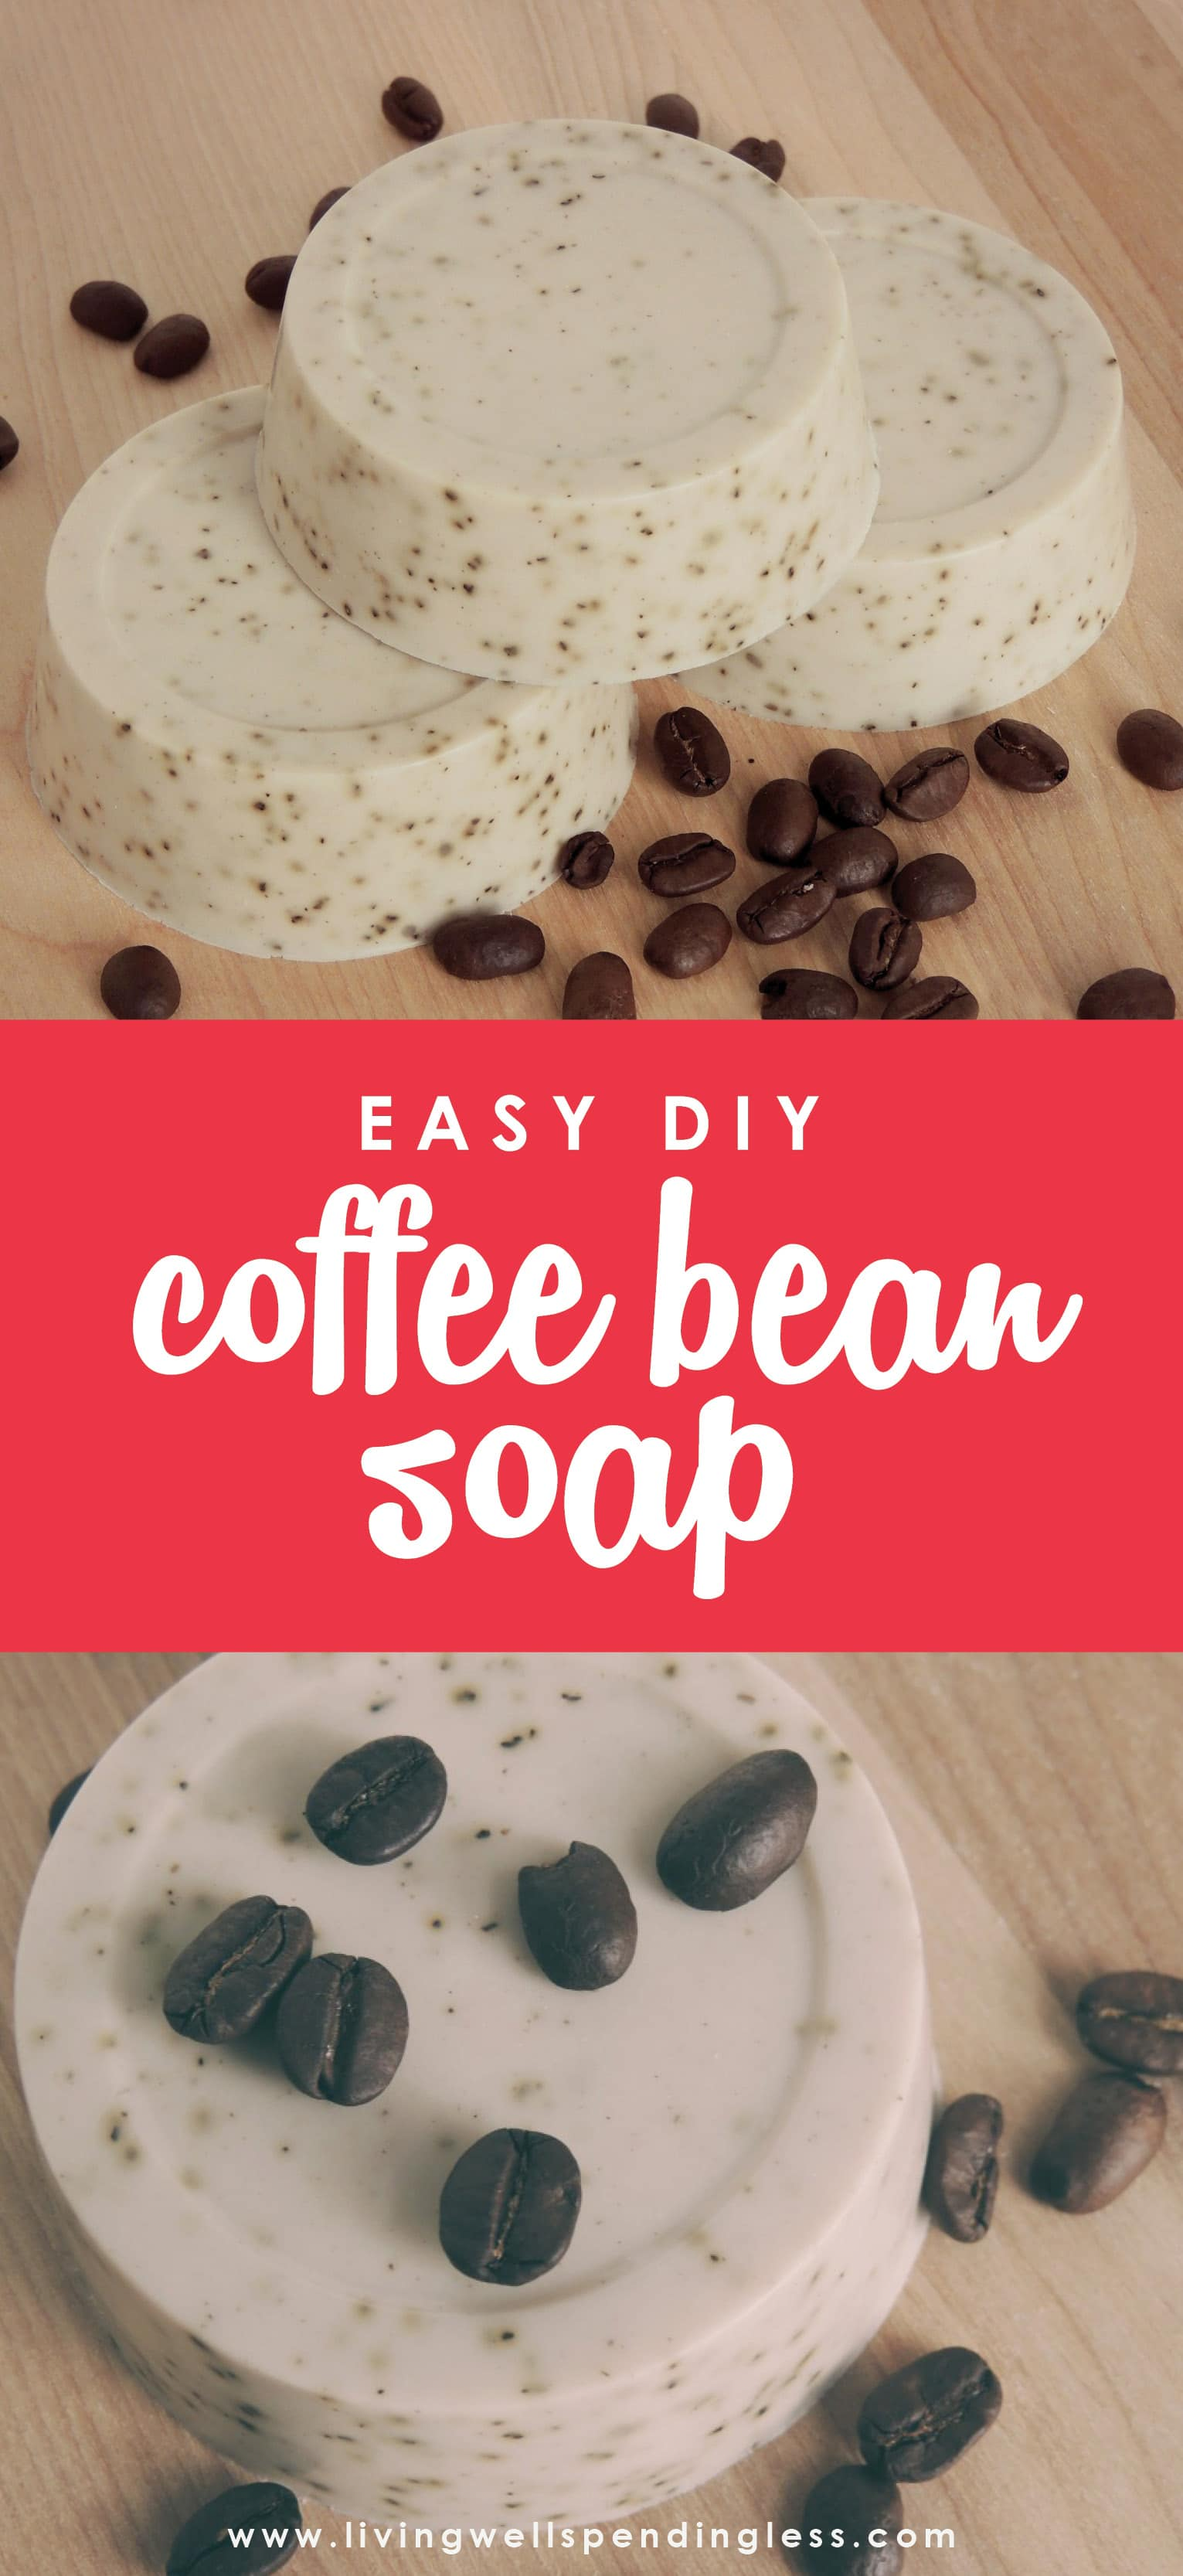 Mmmmm....cofffee....You won't believe how easy it is to whip up this luscious homemade coffee bean soap--just 3 ingredients and 15 minutes is all you need! A perfect gift for the coffee lover in your life, or just a great way to start your day!